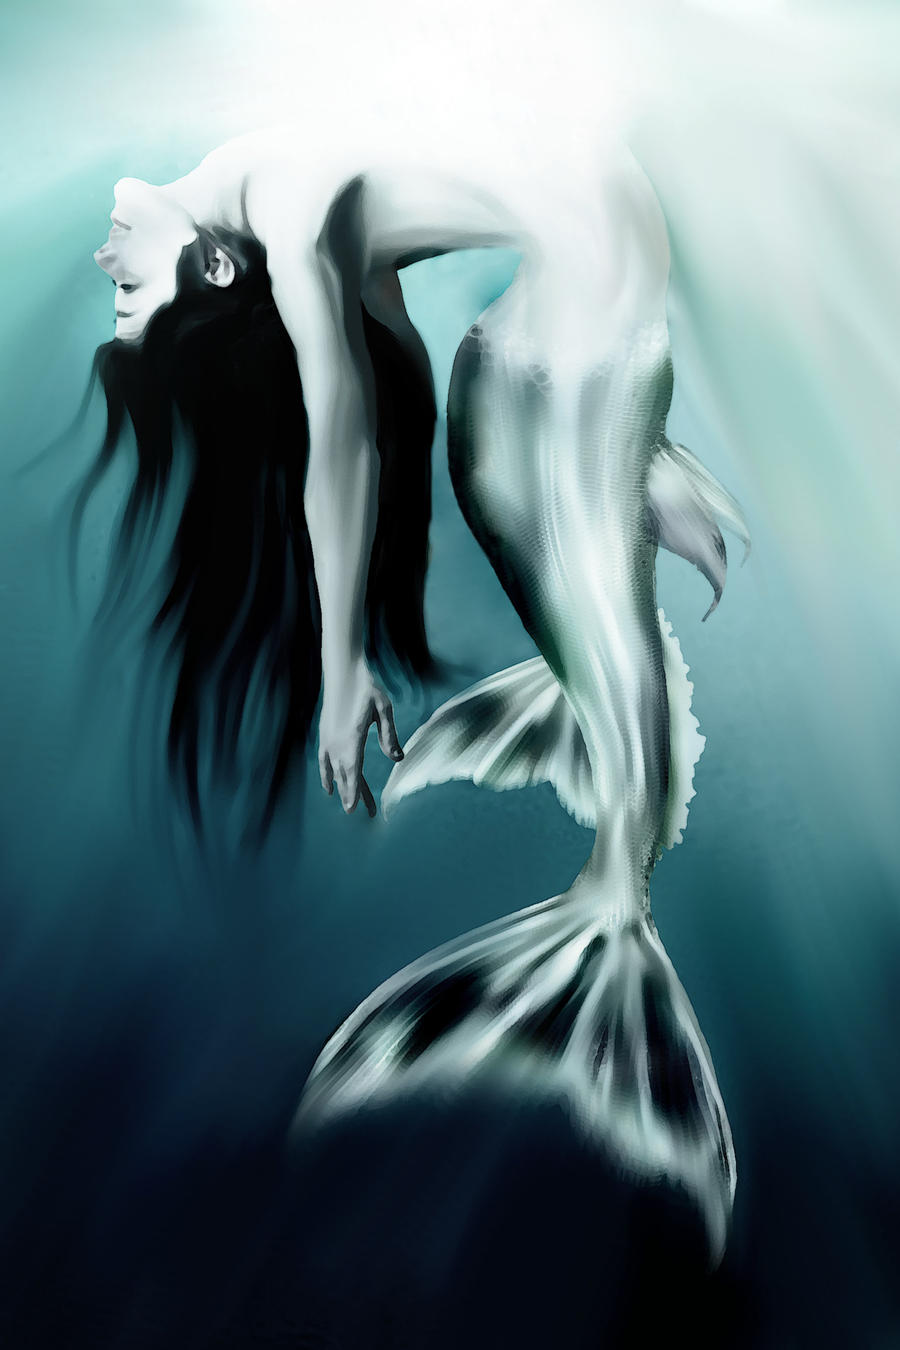 Mermaid by Chrisgiz12